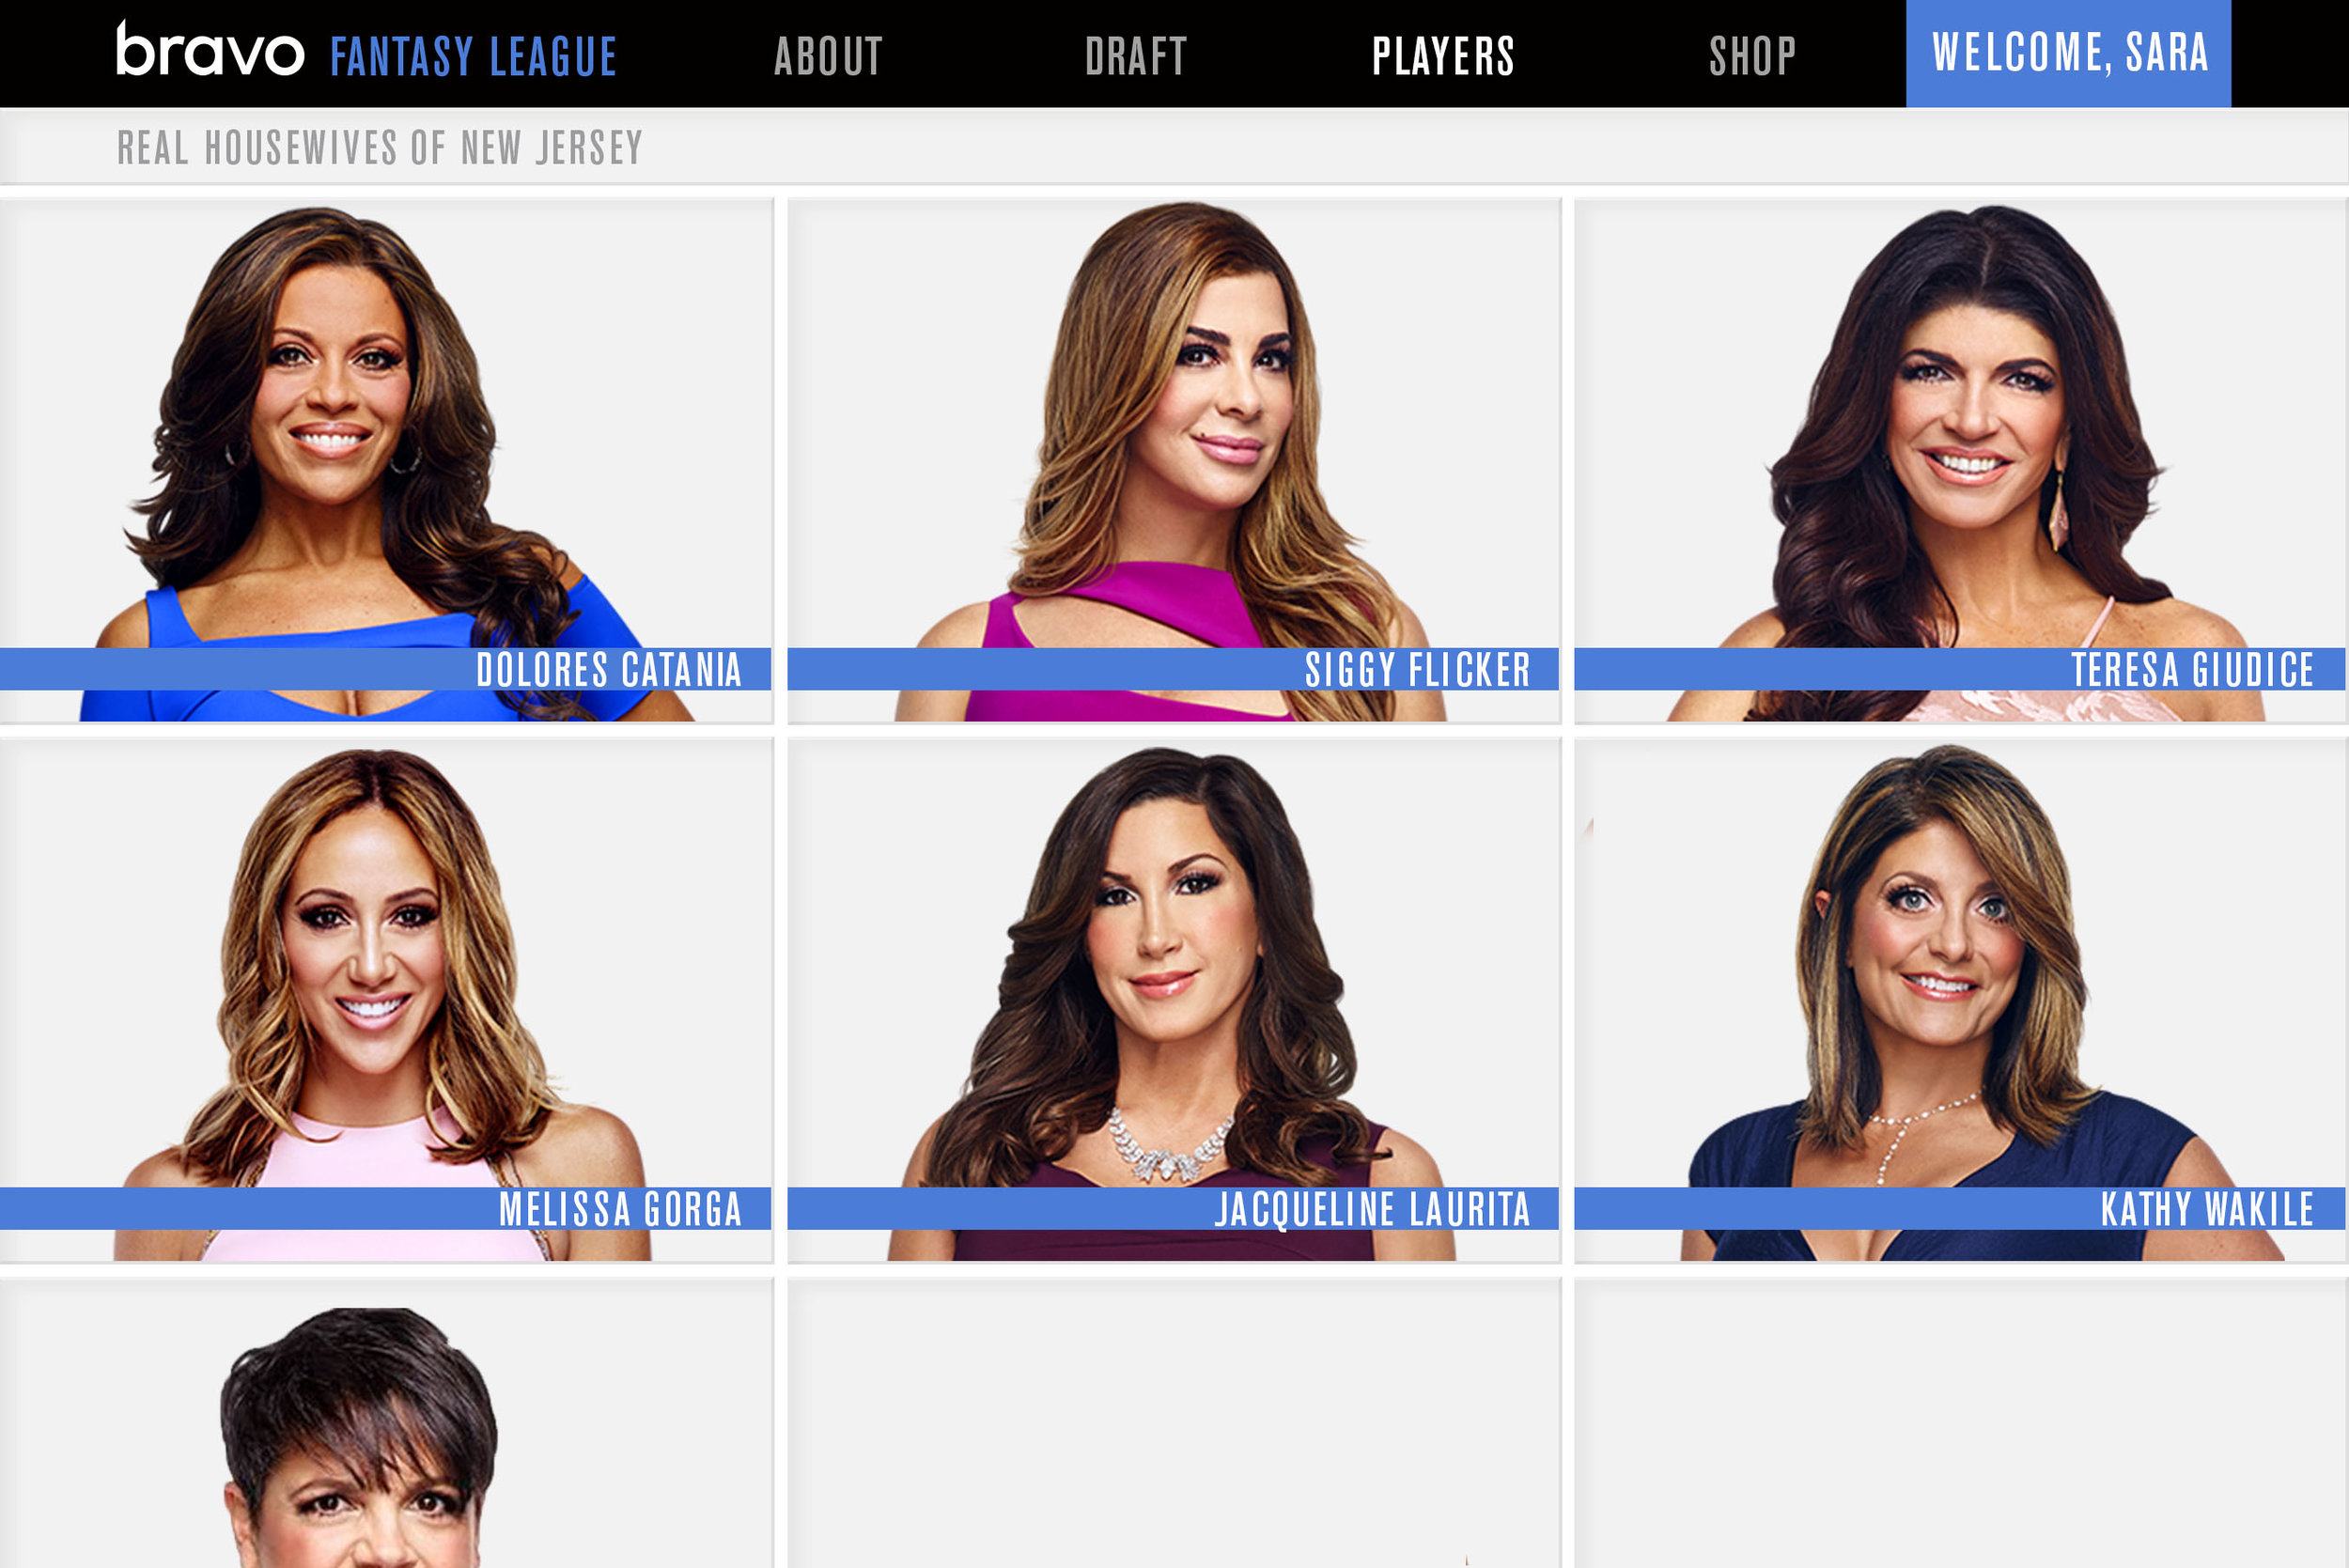 Browse by Bravo franchise to figure out who will be the best fit for your team.